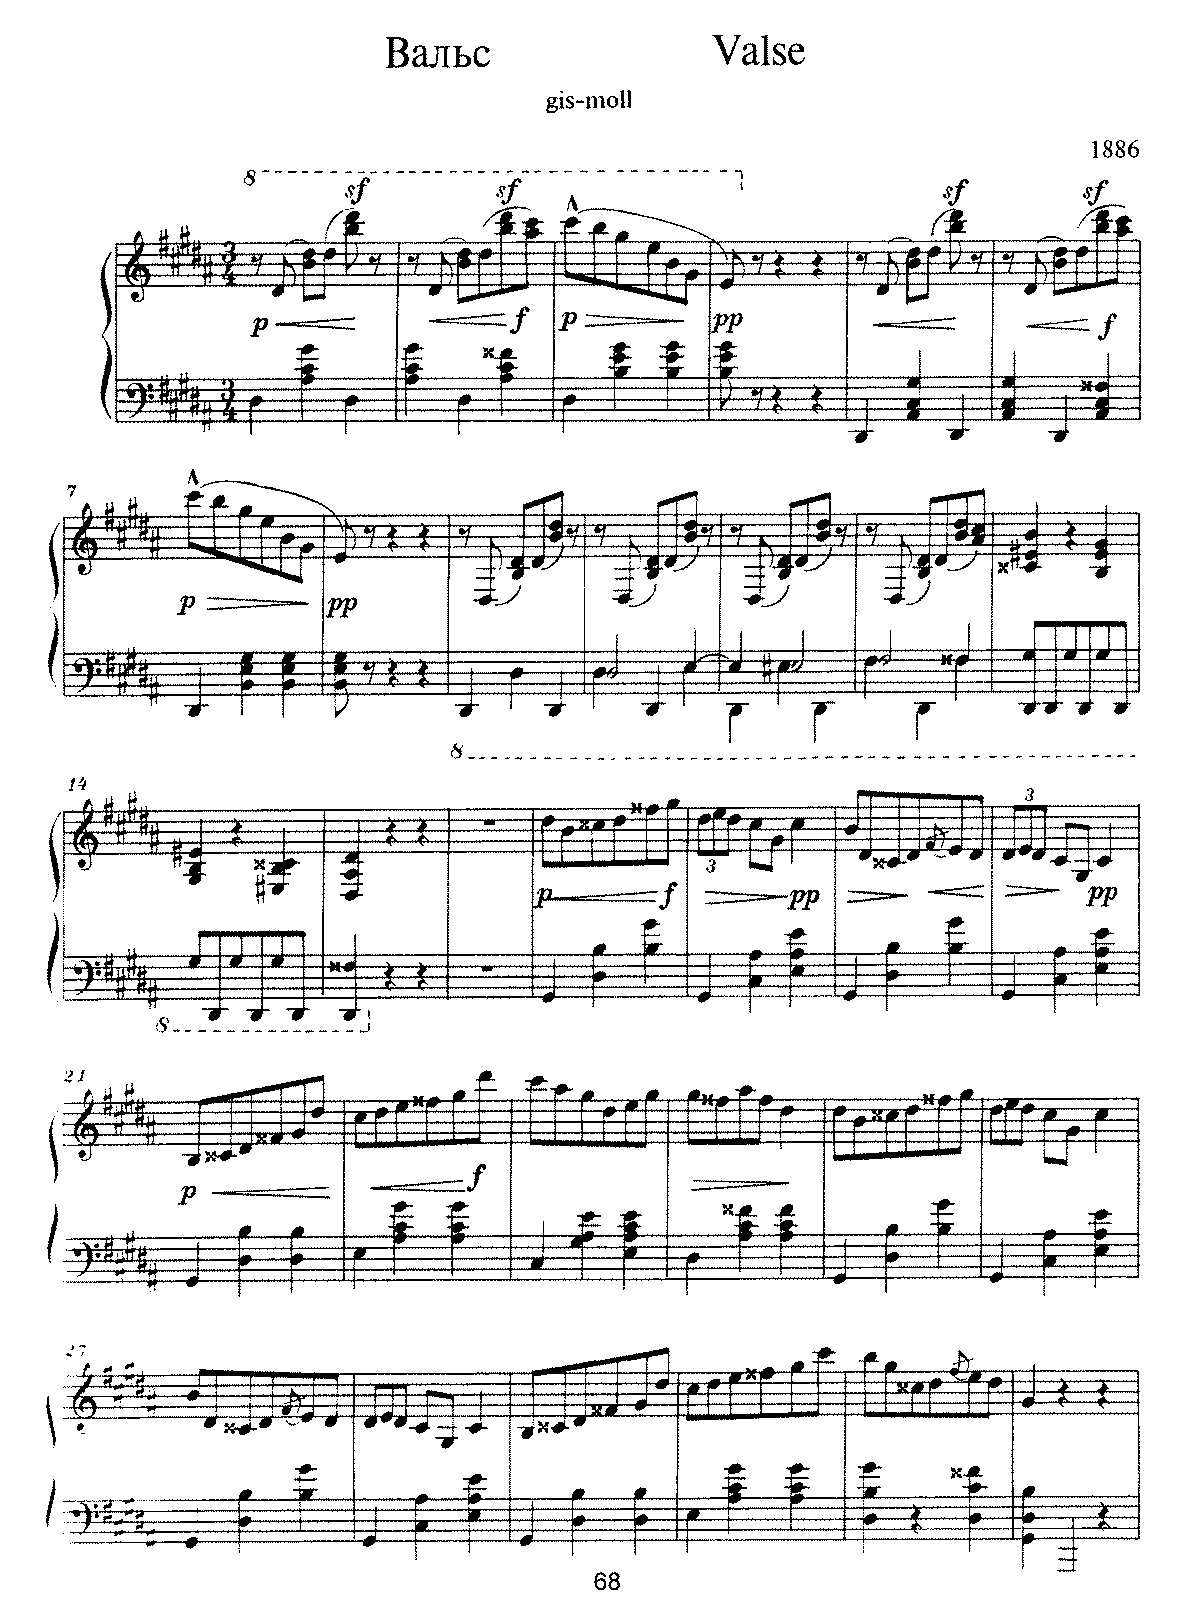 Scriabin - Op.misc - Valse in G- minor (1886).pdf